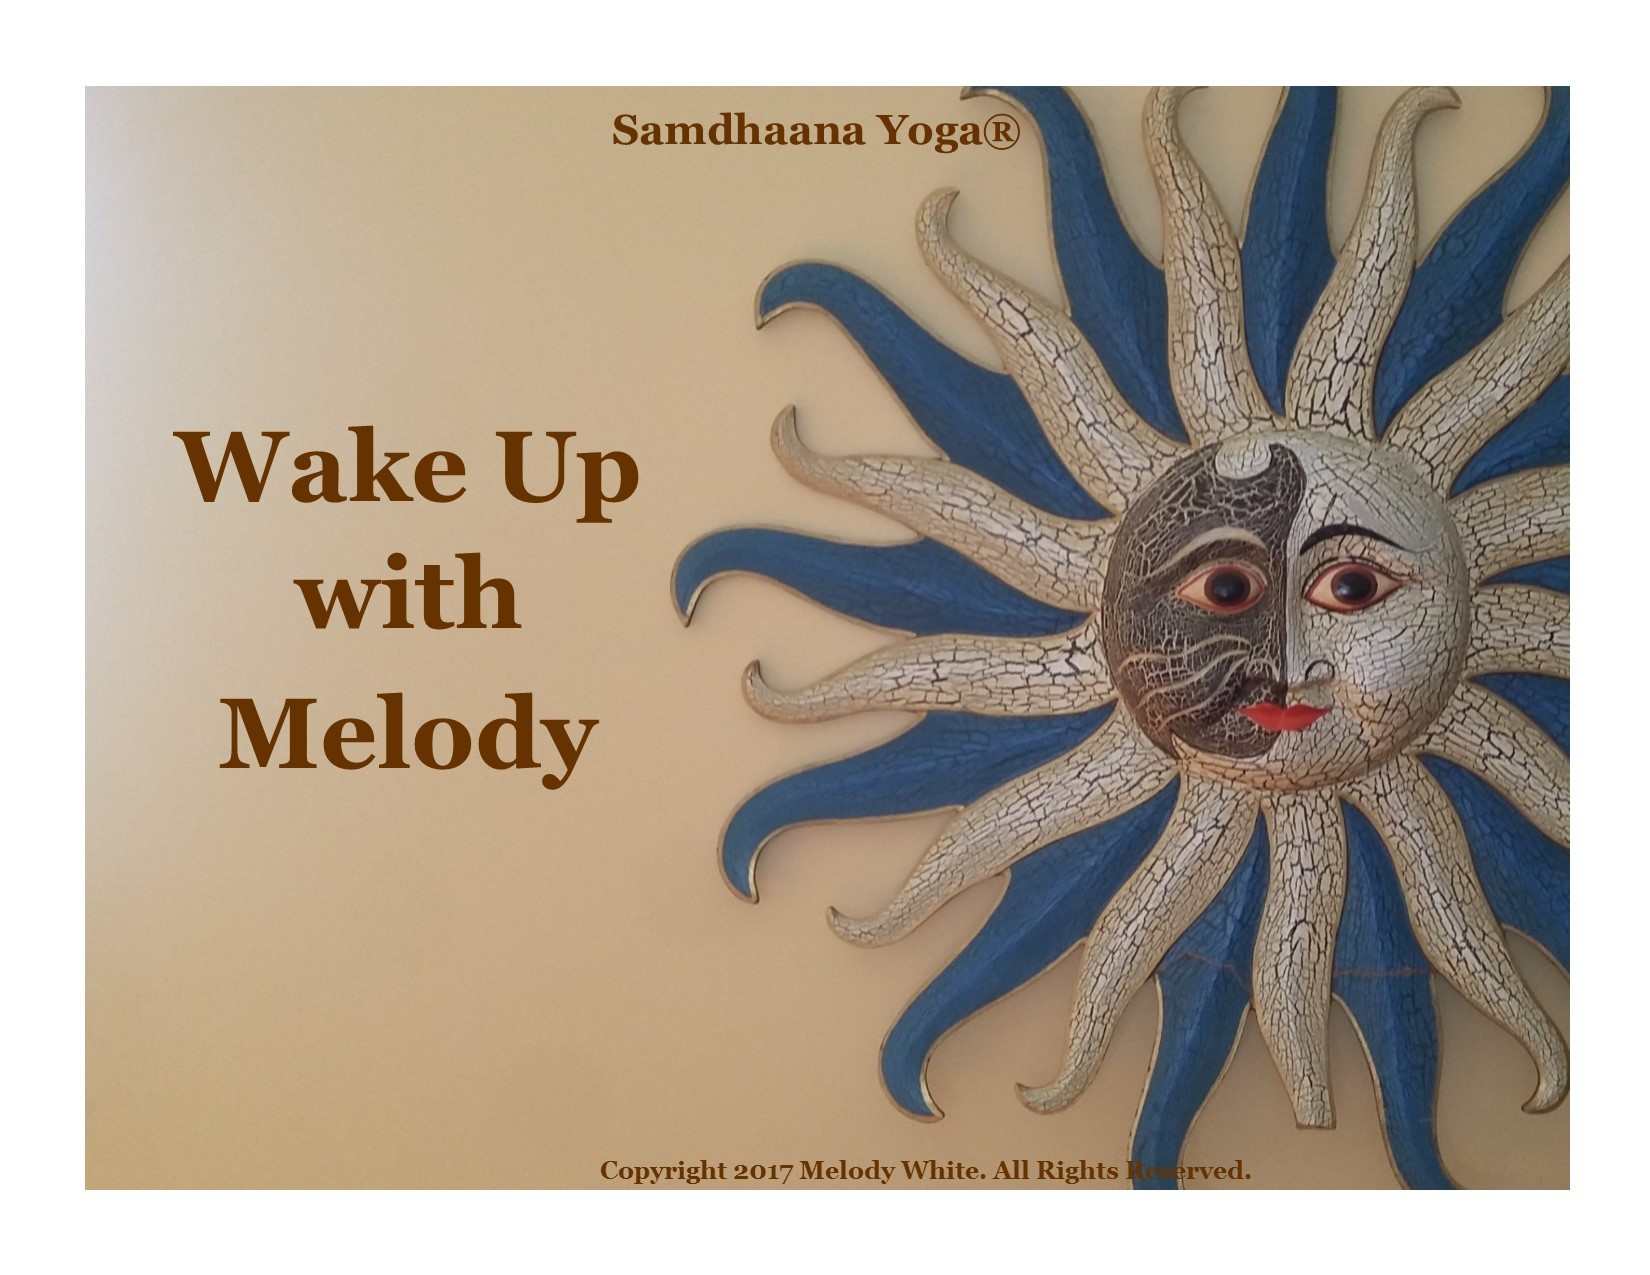 wake up with Melody